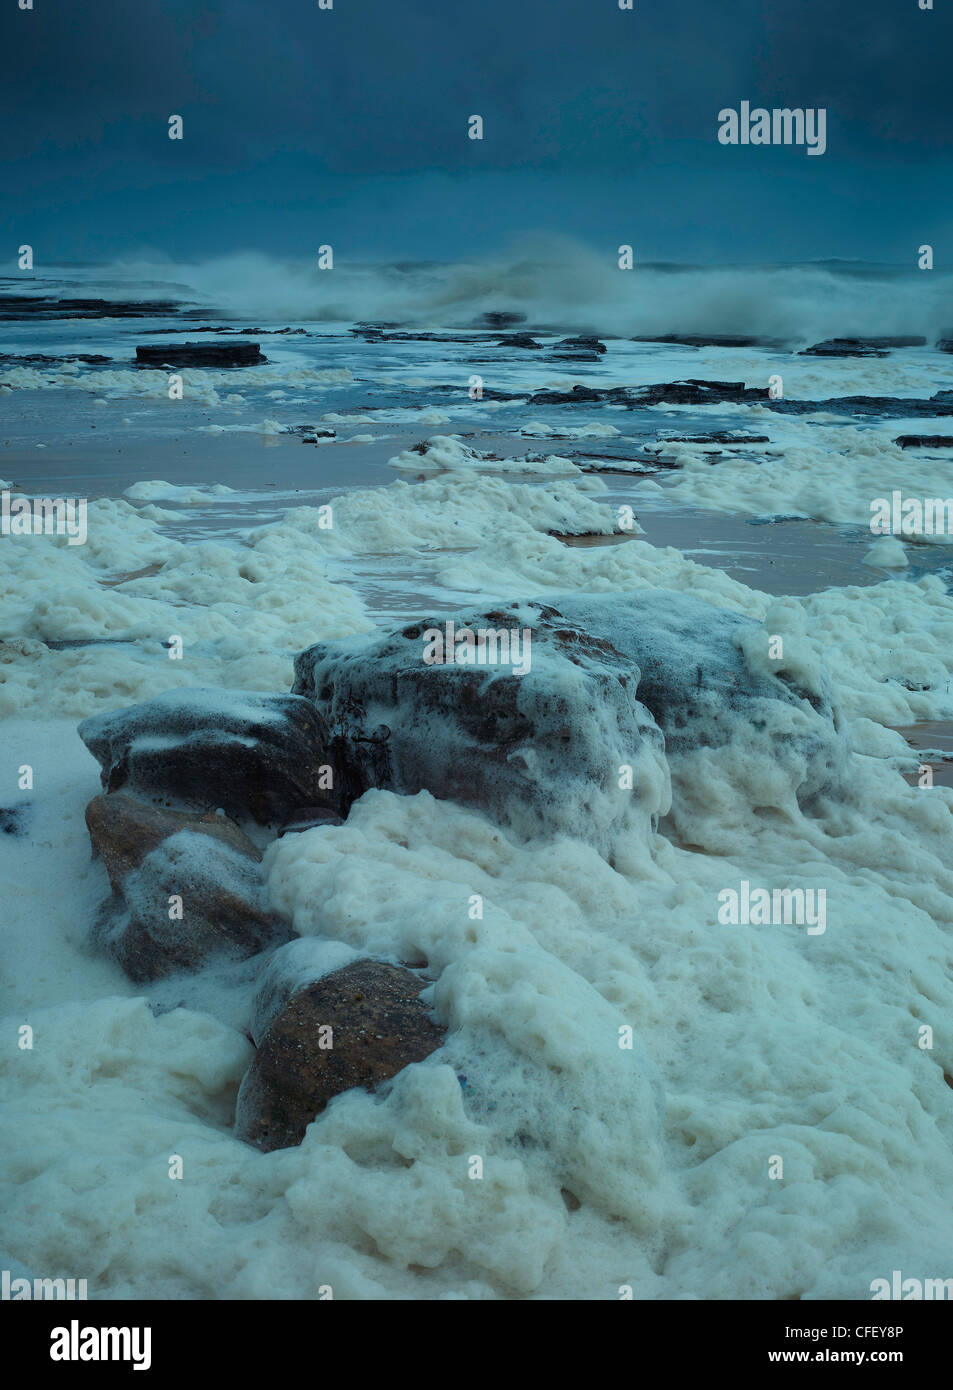 wild seas cover the beach in frothed foam during squall, Wombarra, NSW Australia - Stock Image